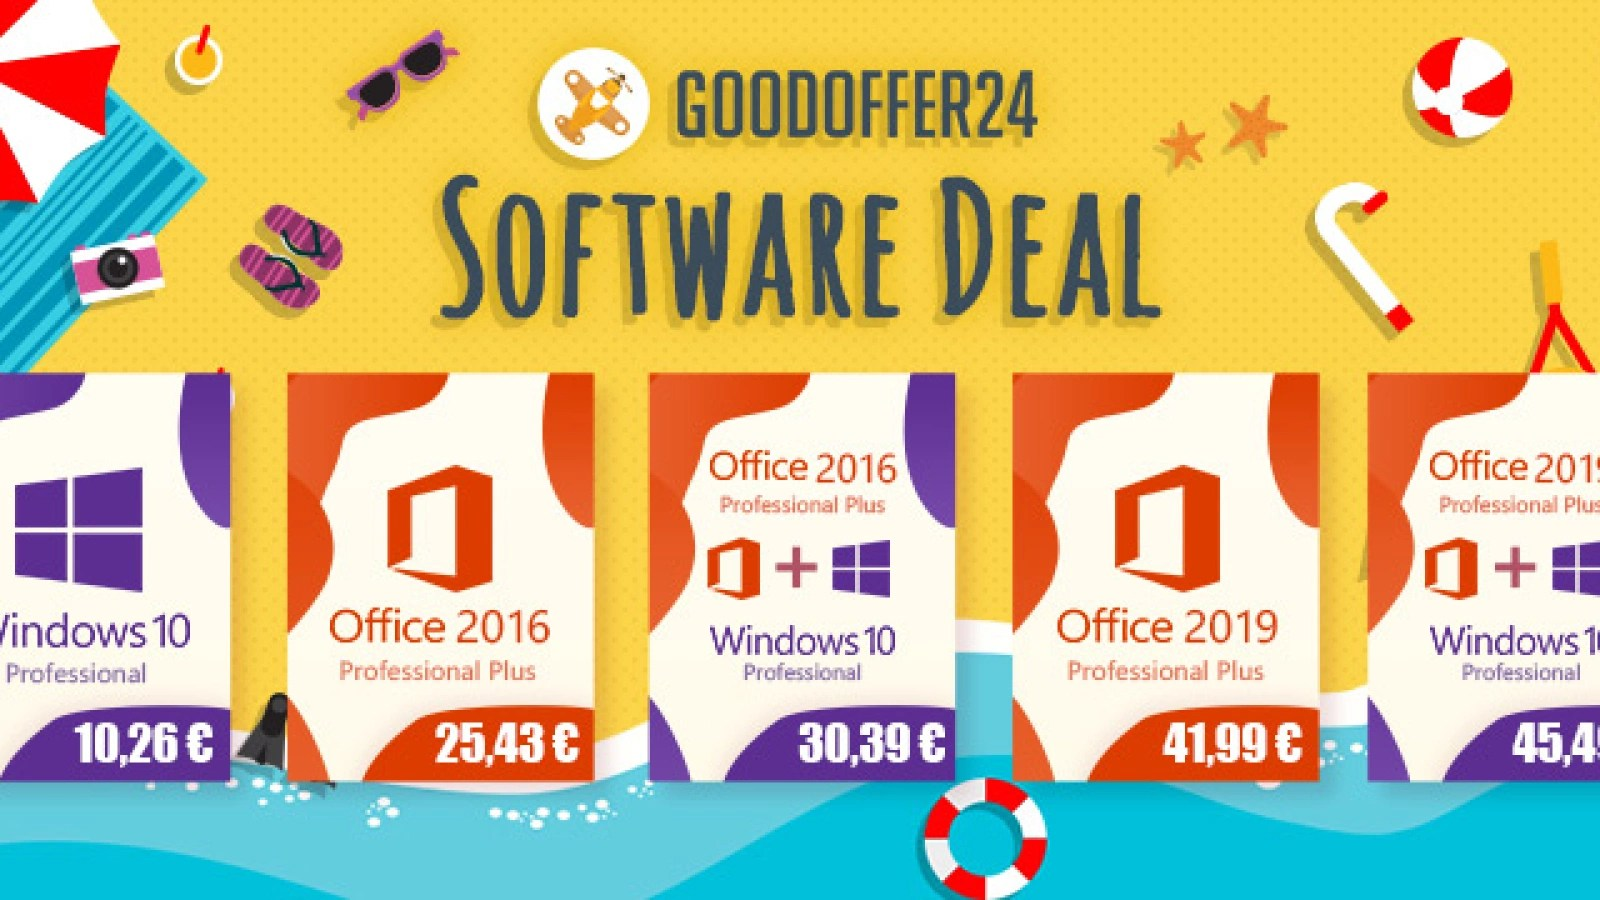 Office Günstig Goodoffer24 Deal Windows 10 Pro Und Office 2016 Besonders Günstig